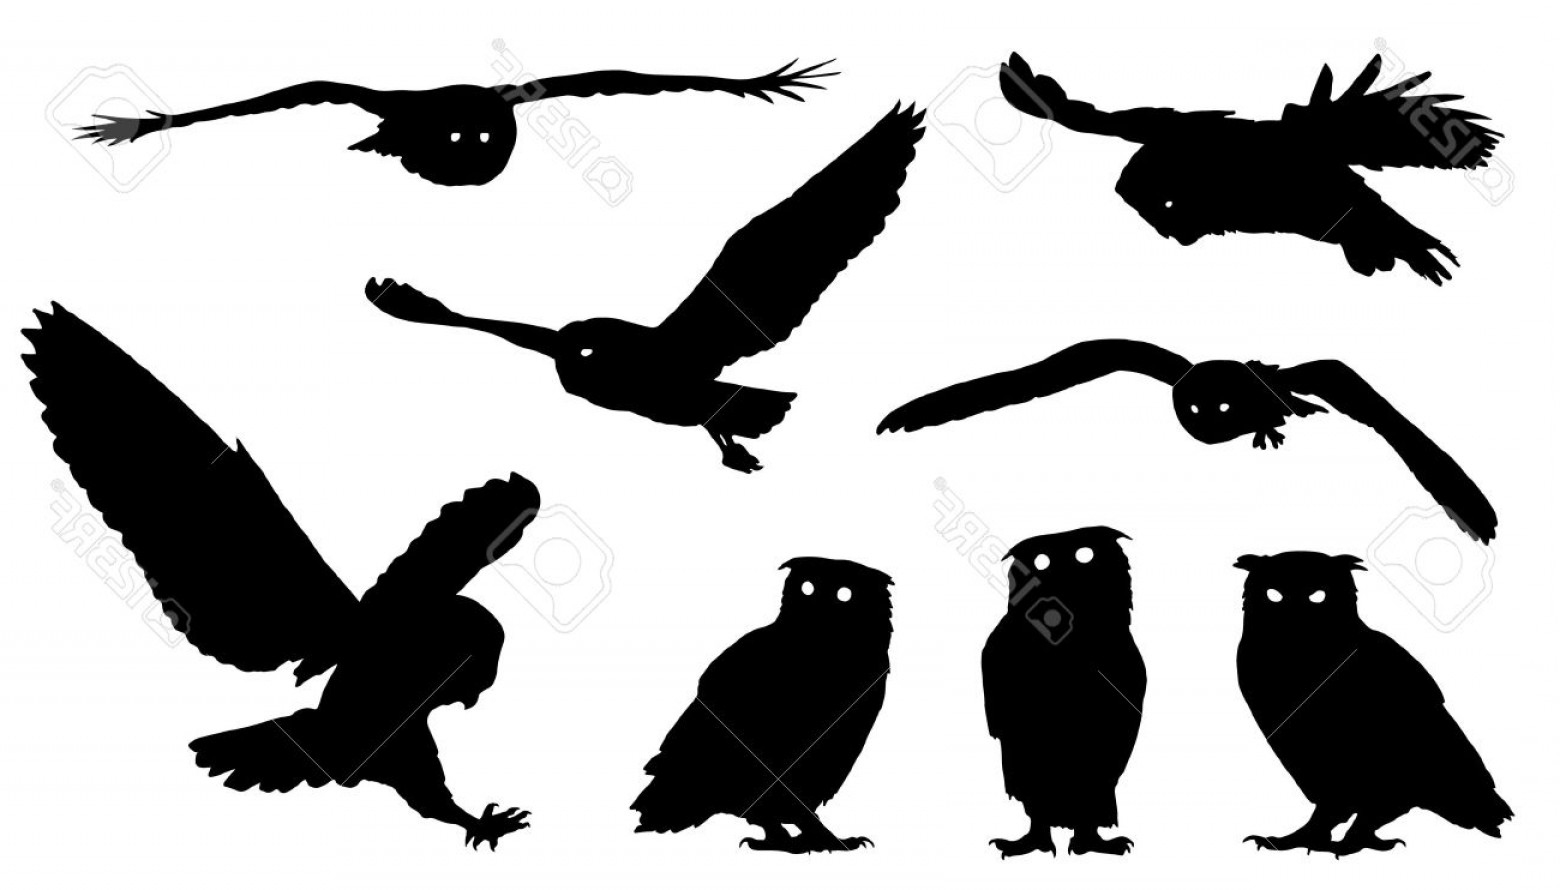 Owl Silhouette Vector Art: Photostock Vector Owl Silhouettes On The White Background